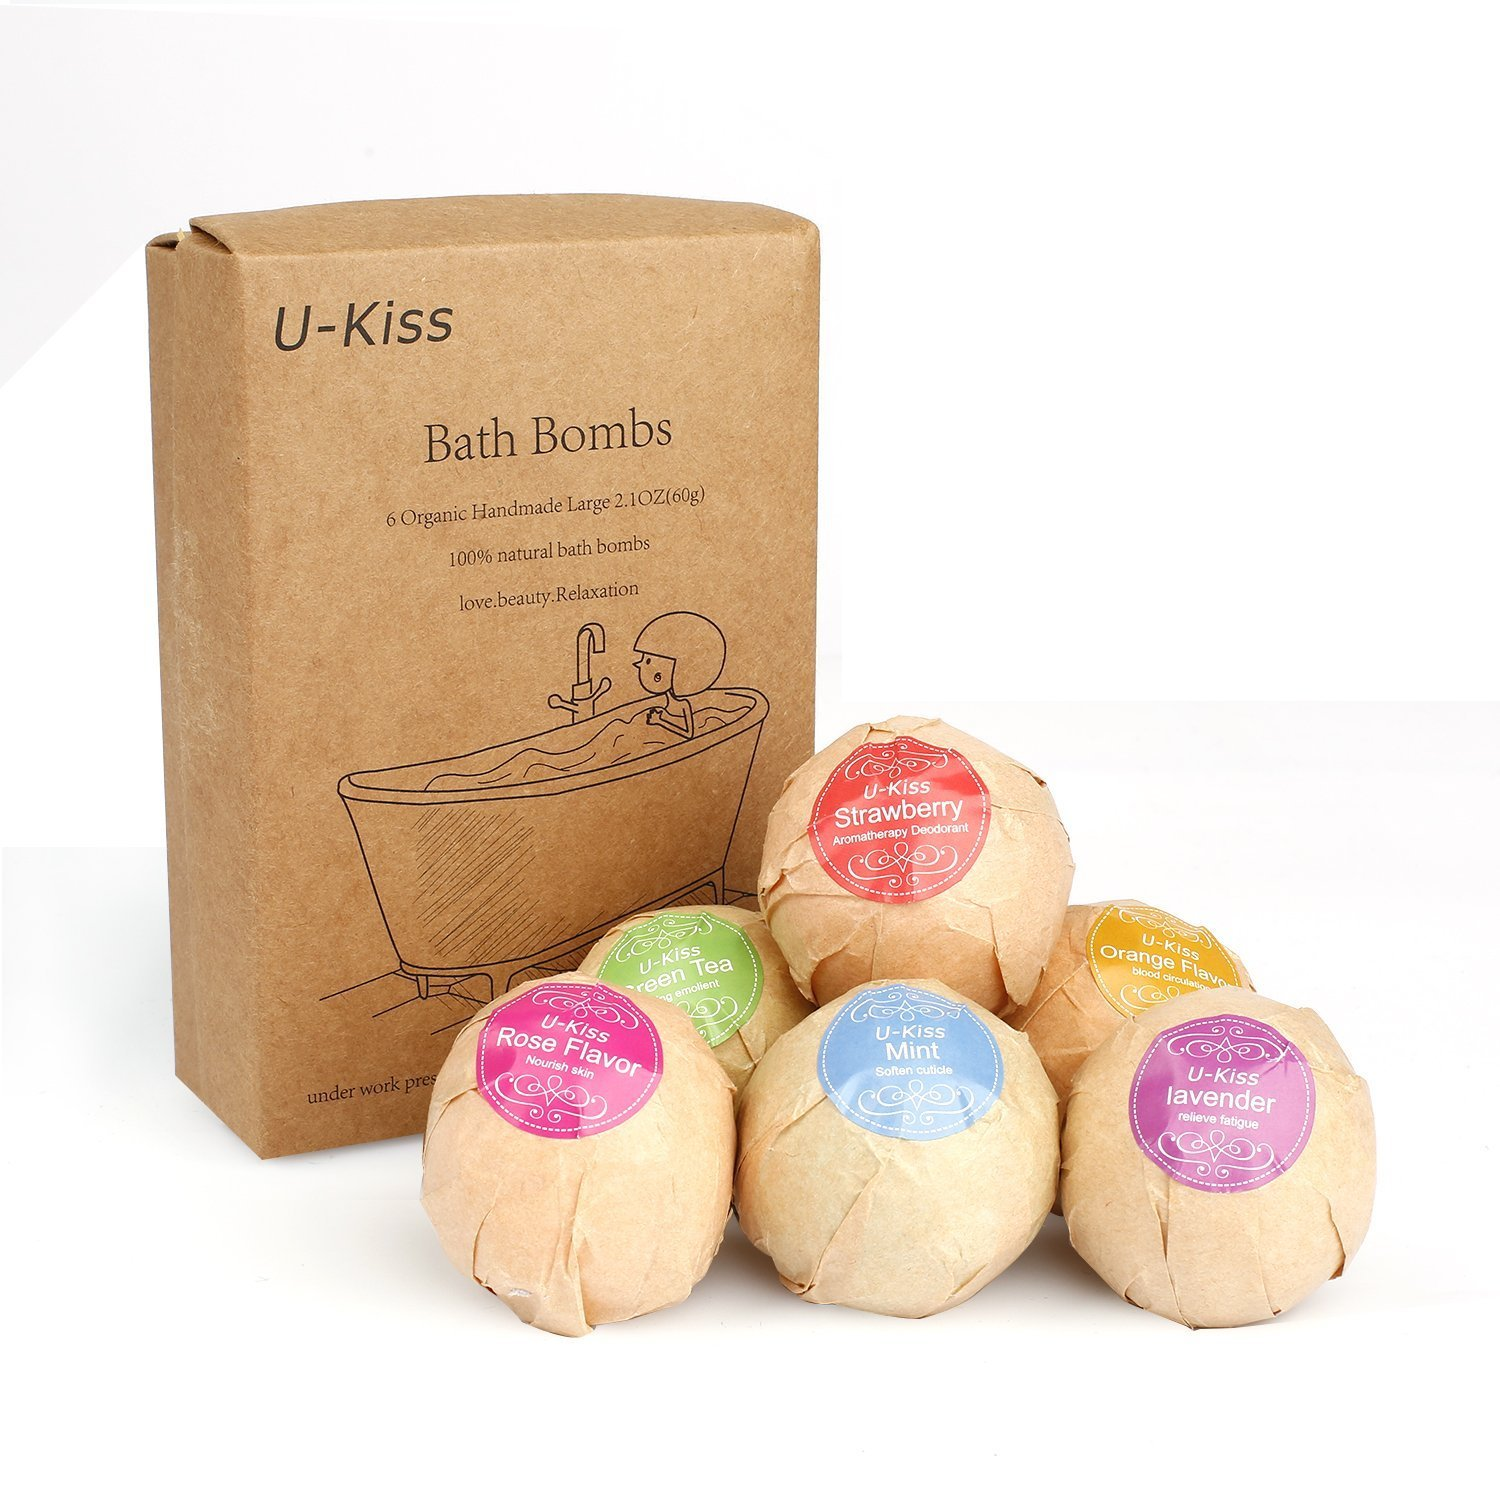 Bath Bomb U-KISS 6 PCS Bath Bomb Gift Set, All Natural Essential Oil Bath Bomb, Birthday Gifts for her, Teen girls, Valentine gift KMtar5CA